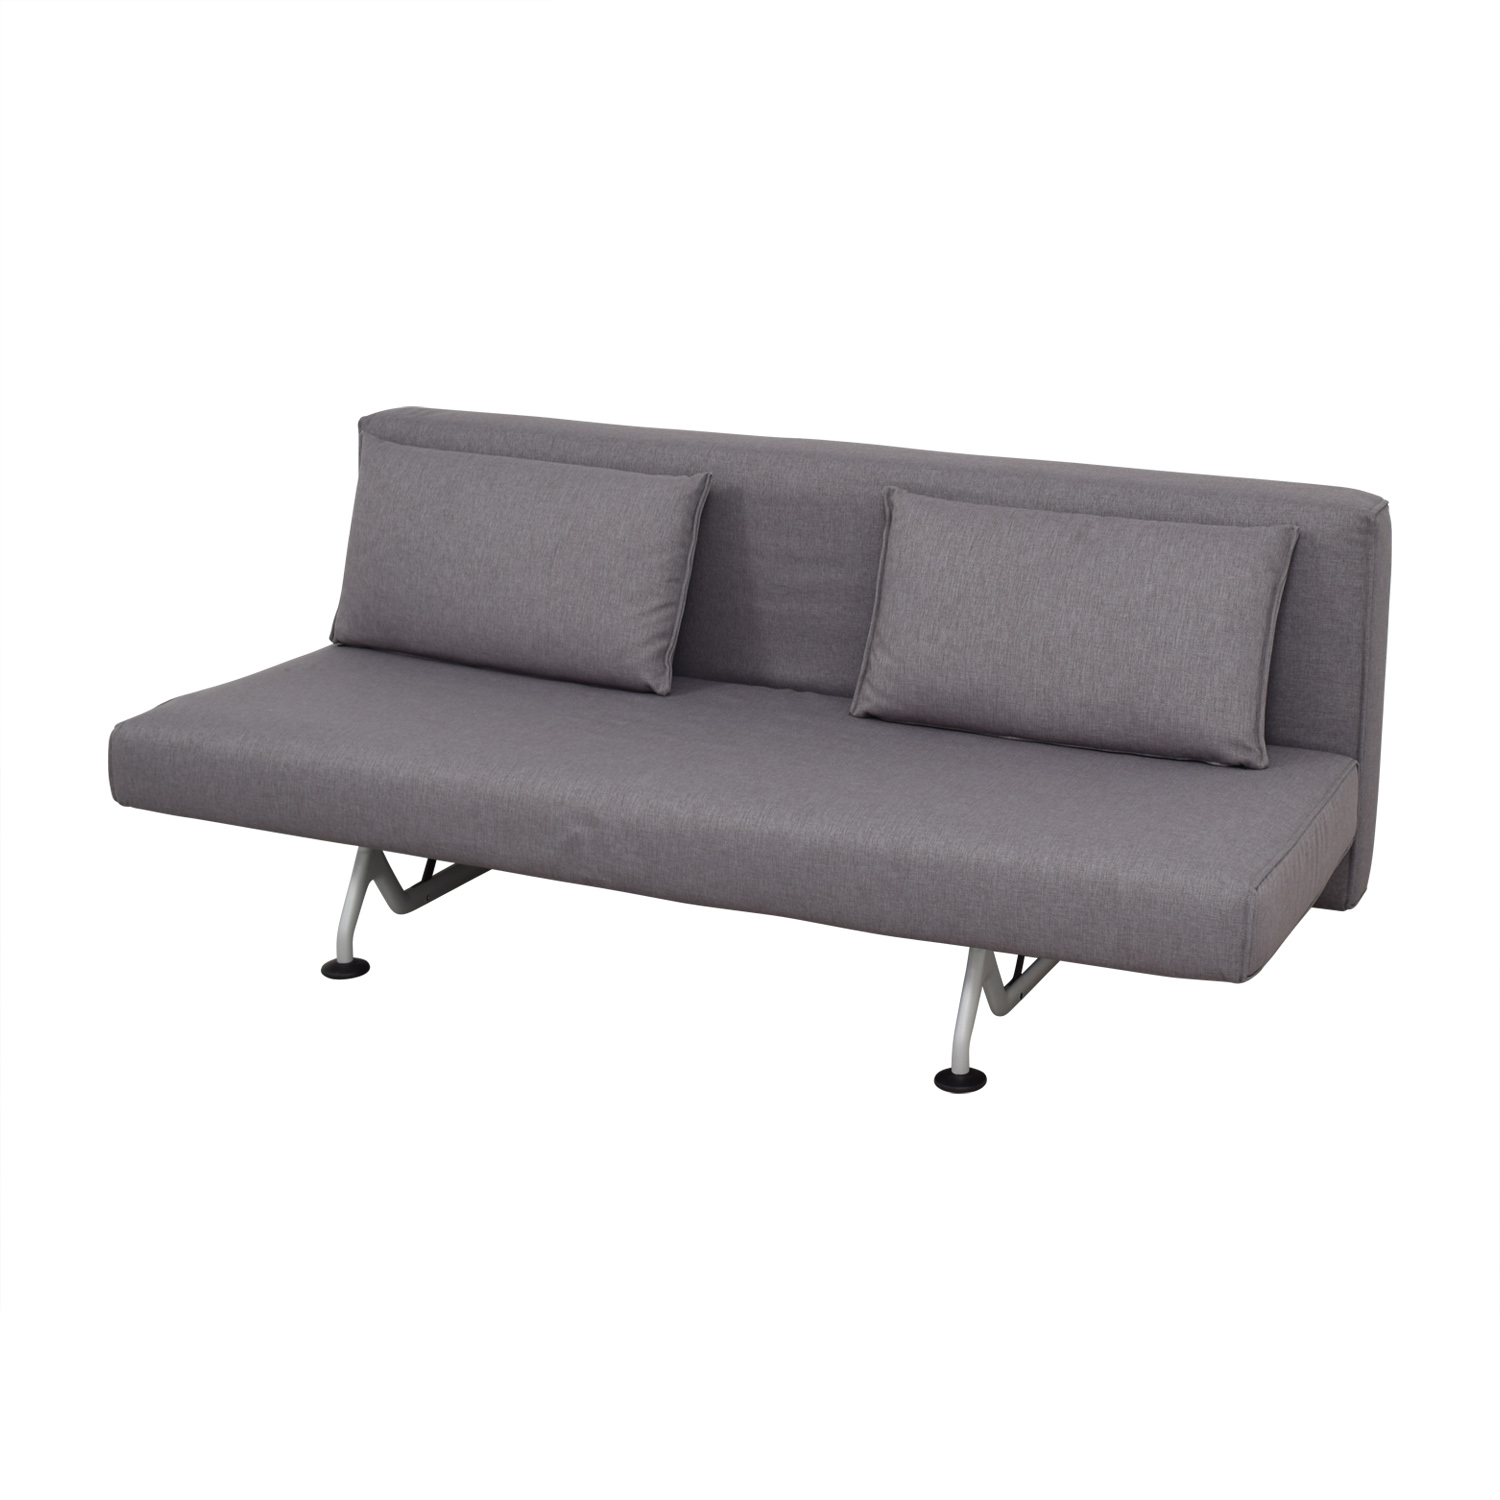 84 Off Design Within Reach Dwr Design Within Reach Grey